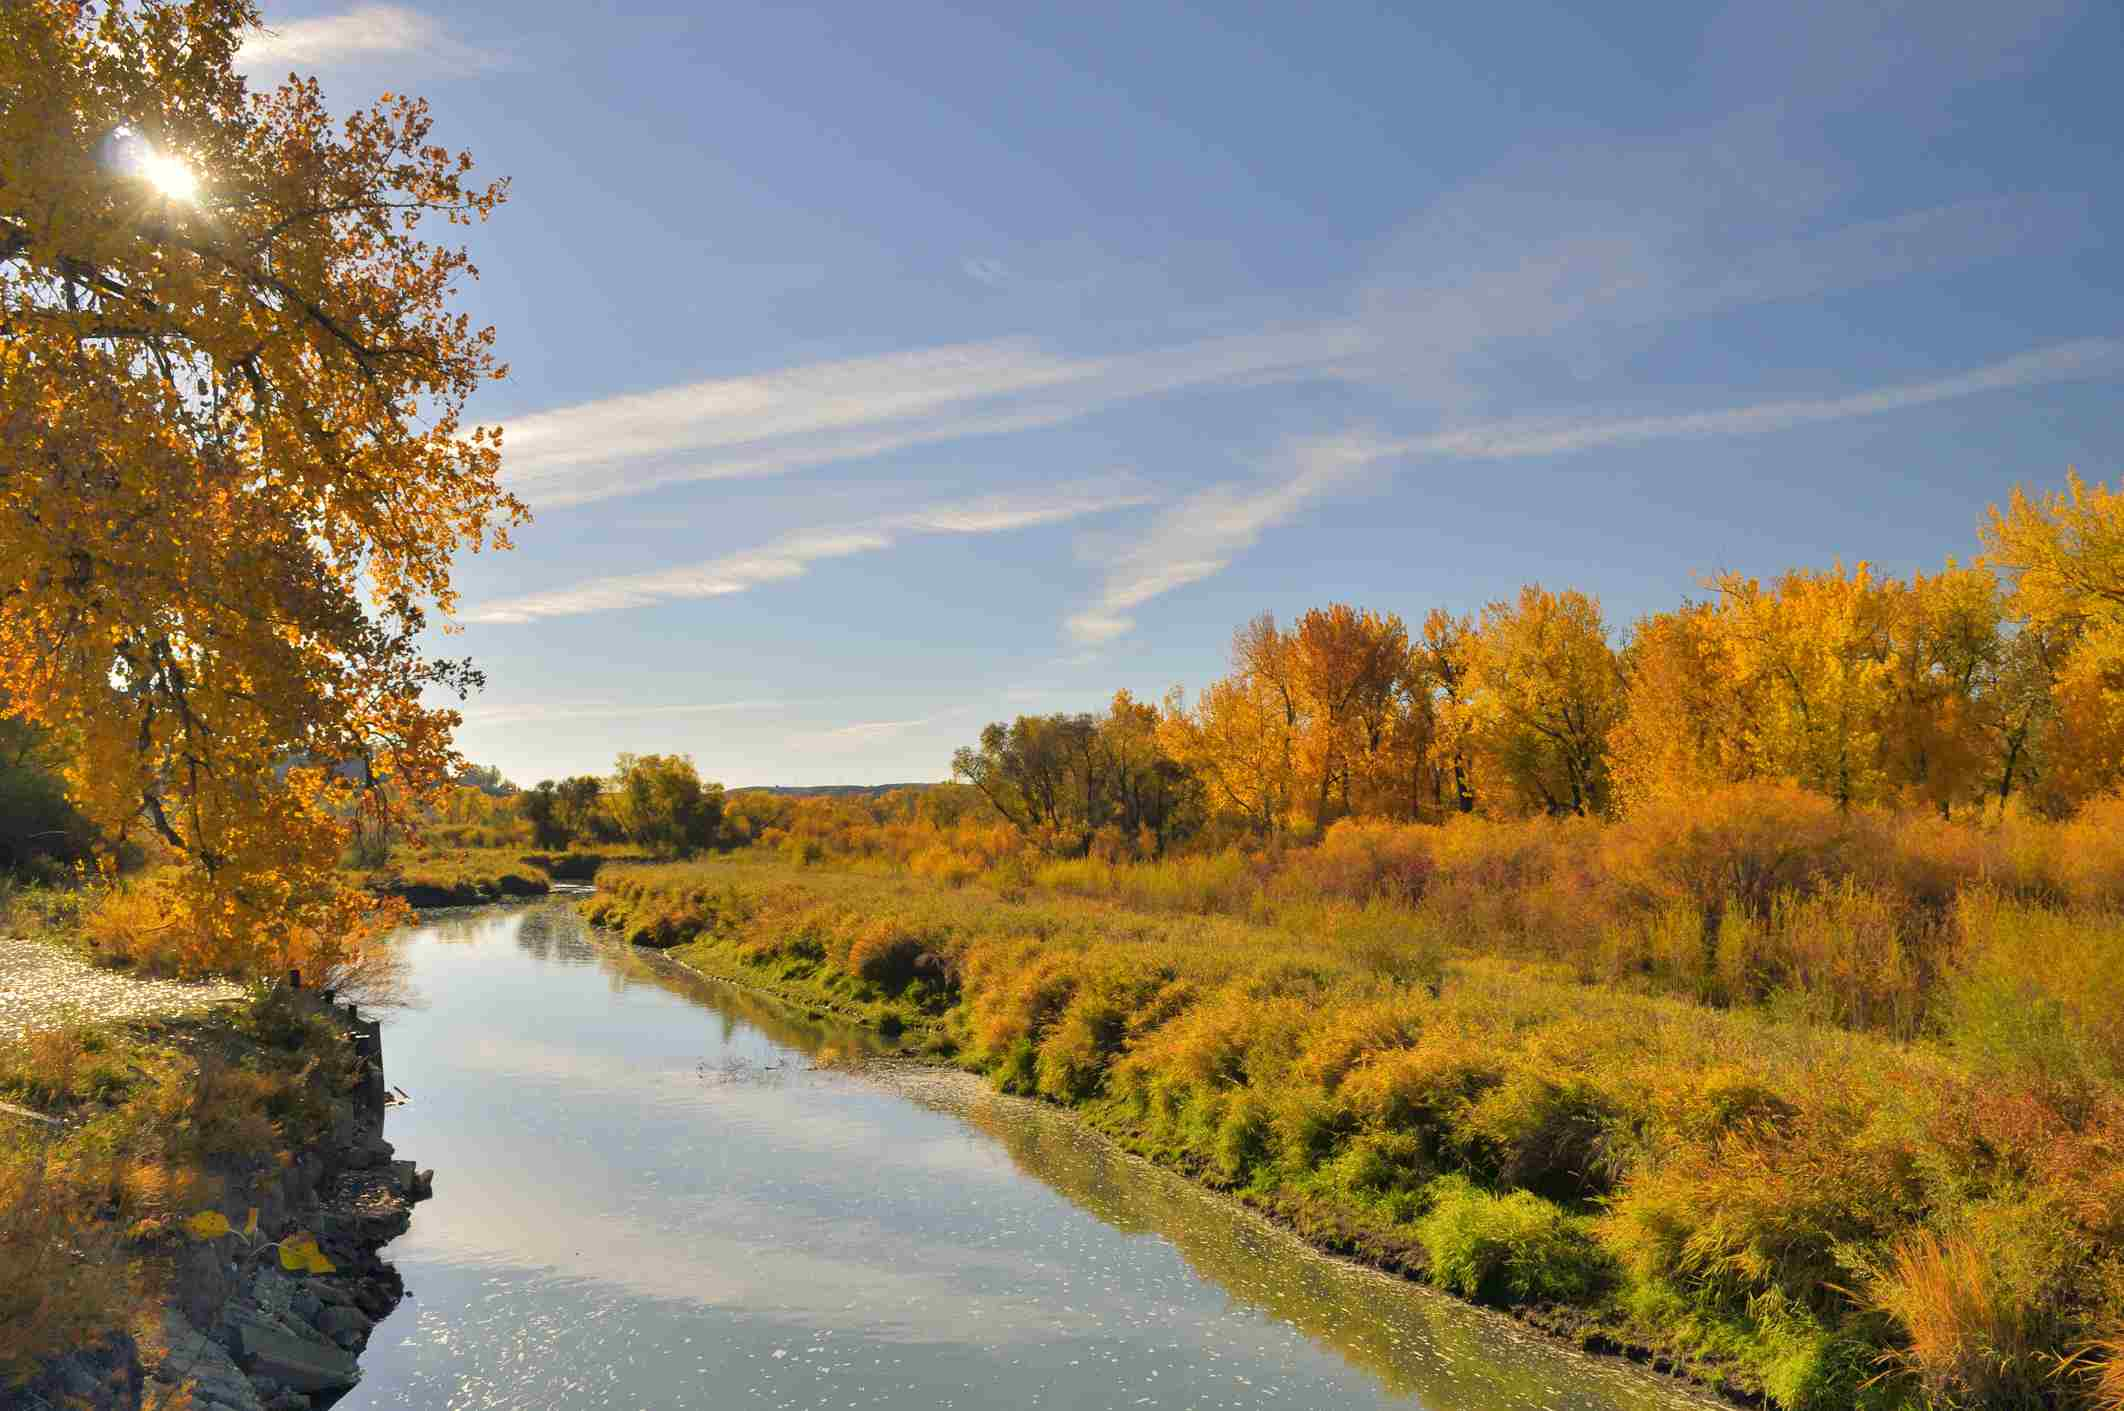 A branch of the Yellowstone River that goes through the Riverfront Park in Billings Montana.